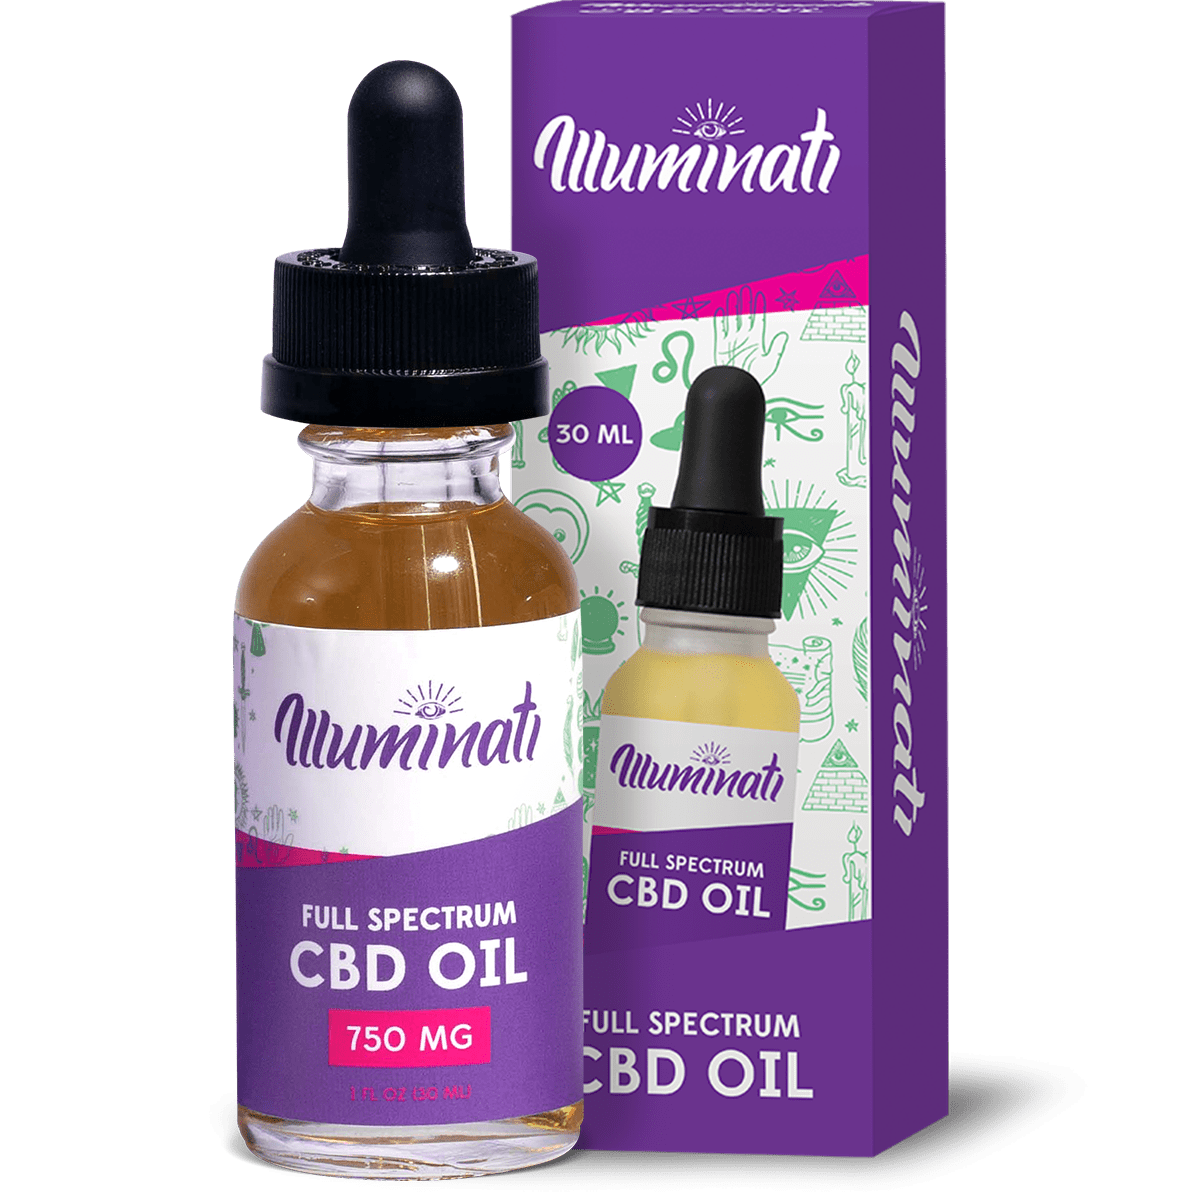 Illuminati CBD Oil Drops 750mg